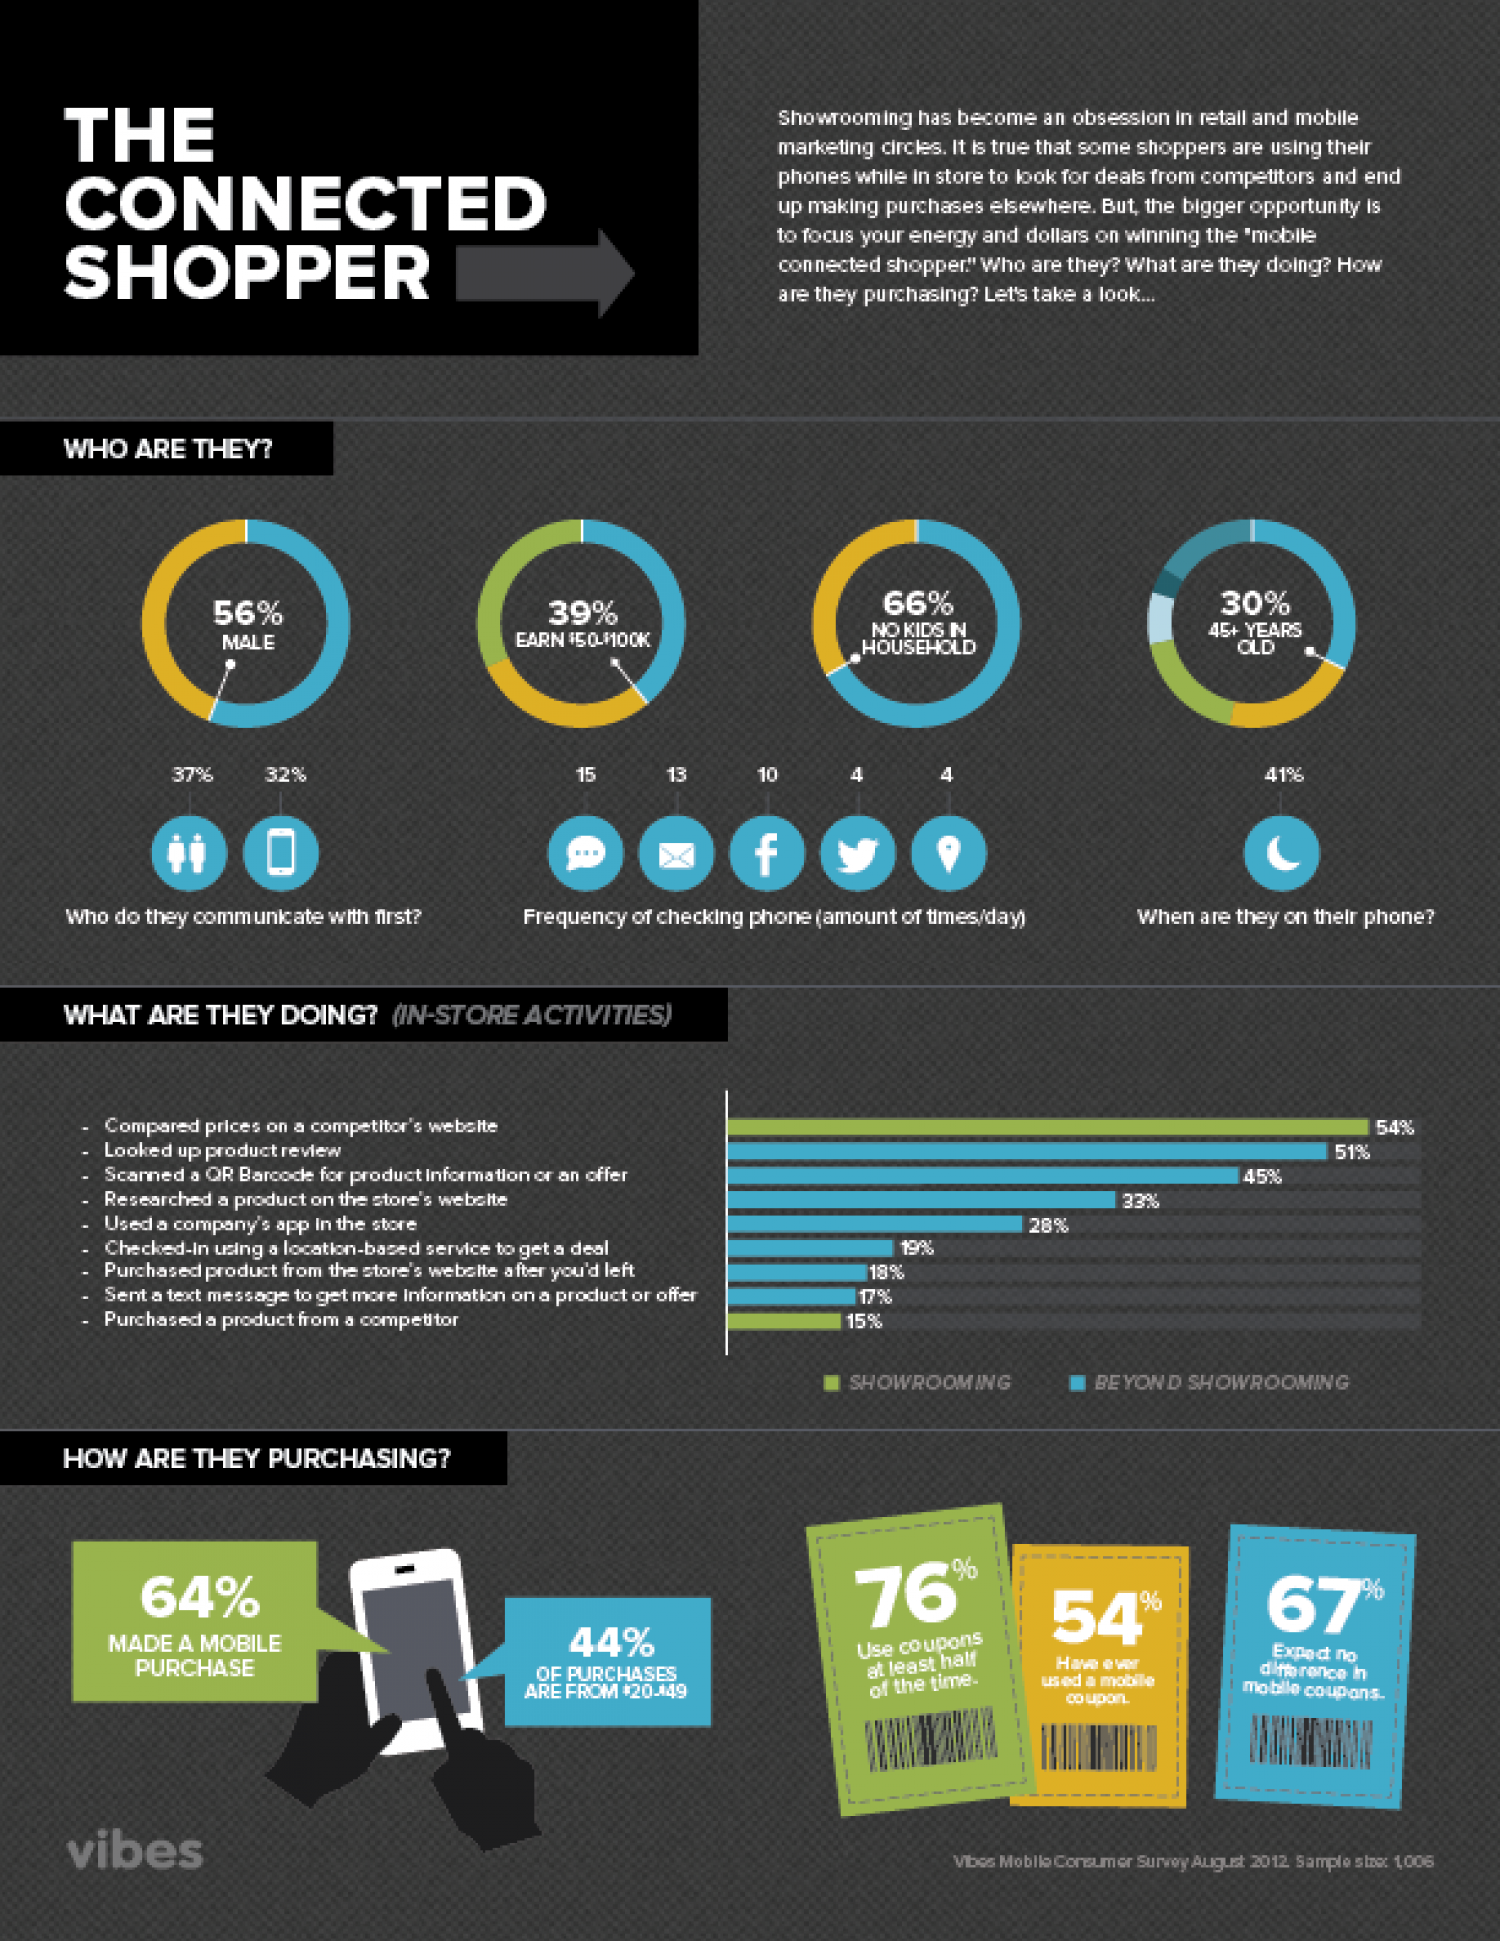 The Connected Shopper Infographic